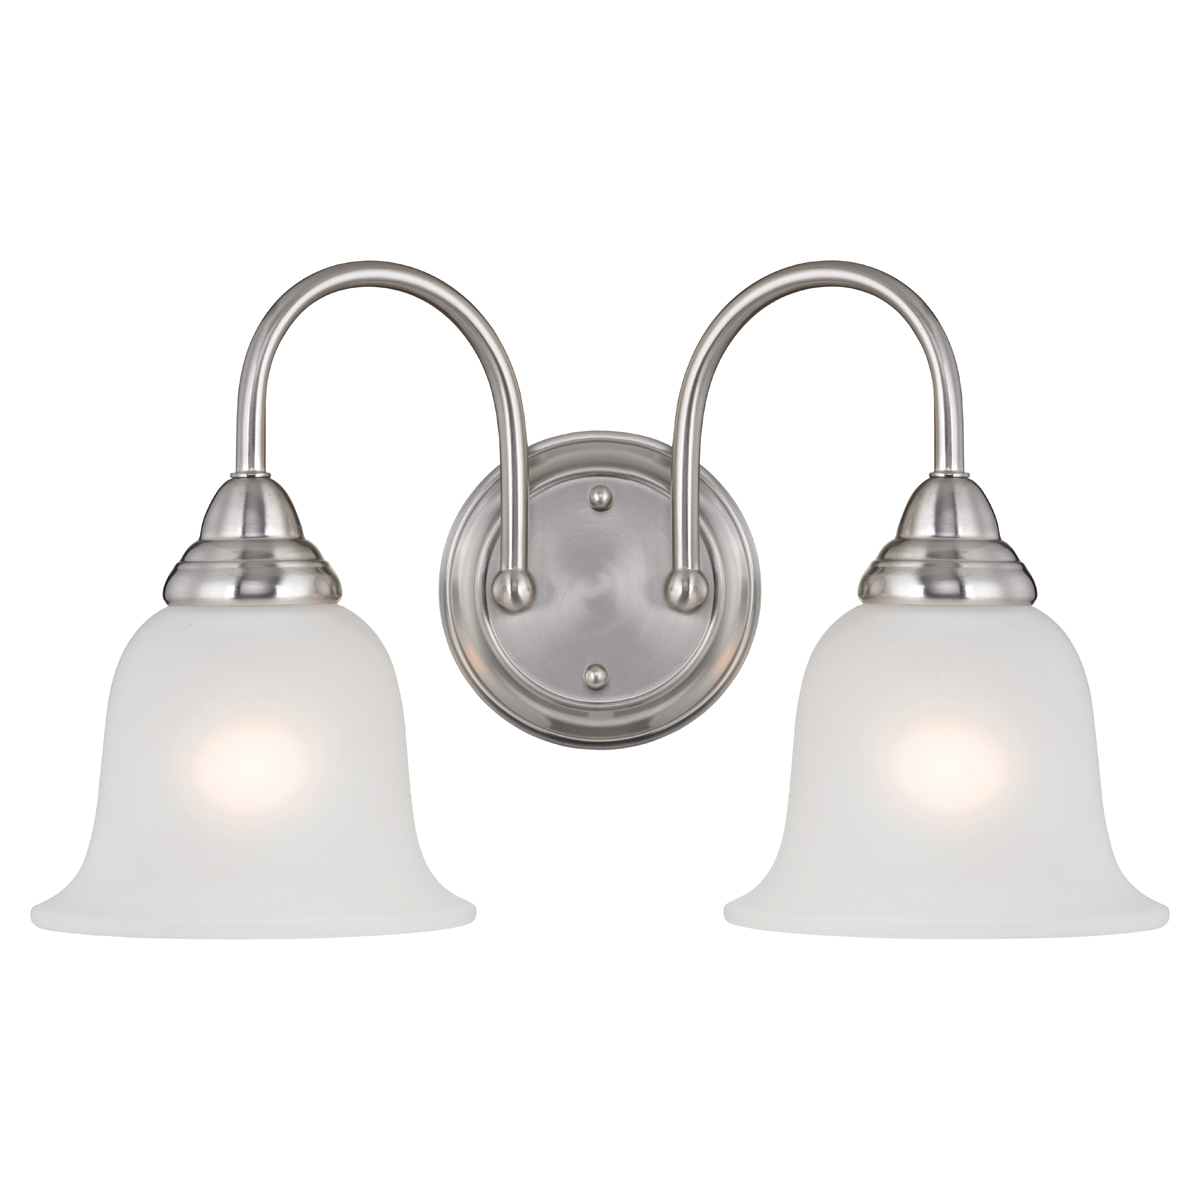 Picture of Boston Harbor LYB130928-2VL-BN Wall Sconce, 60 W, 2-Lamp, A19 or CFL Lamp, Steel Fixture, Brushed Nickel Fixture